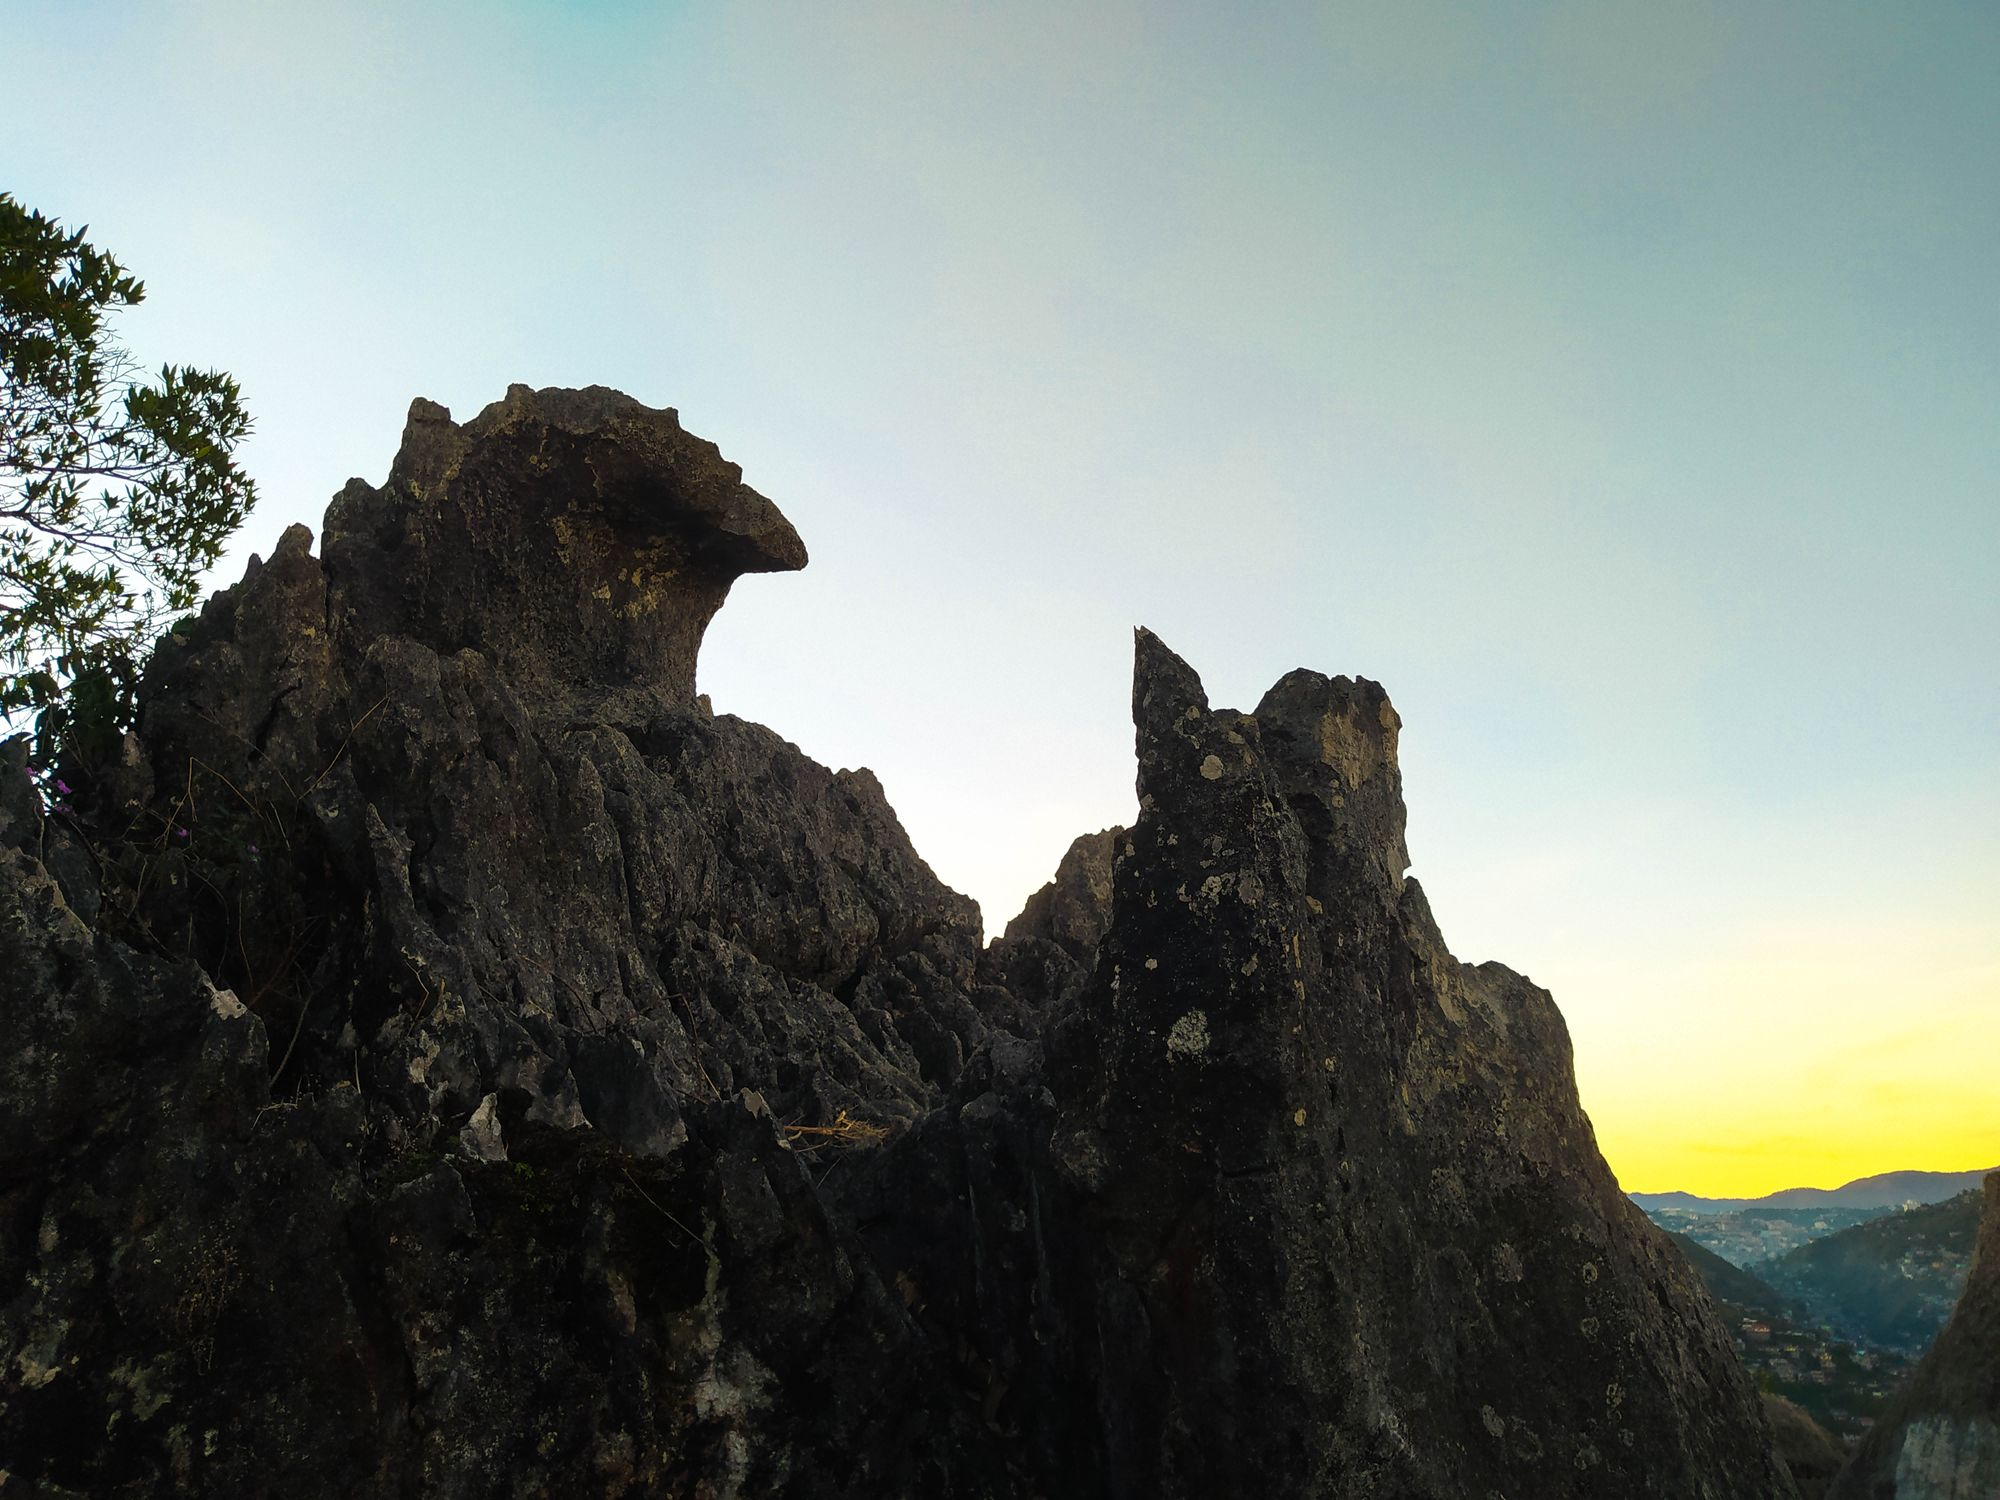 Limestone rock formations beneath a dawn sky at Mount Kalugong